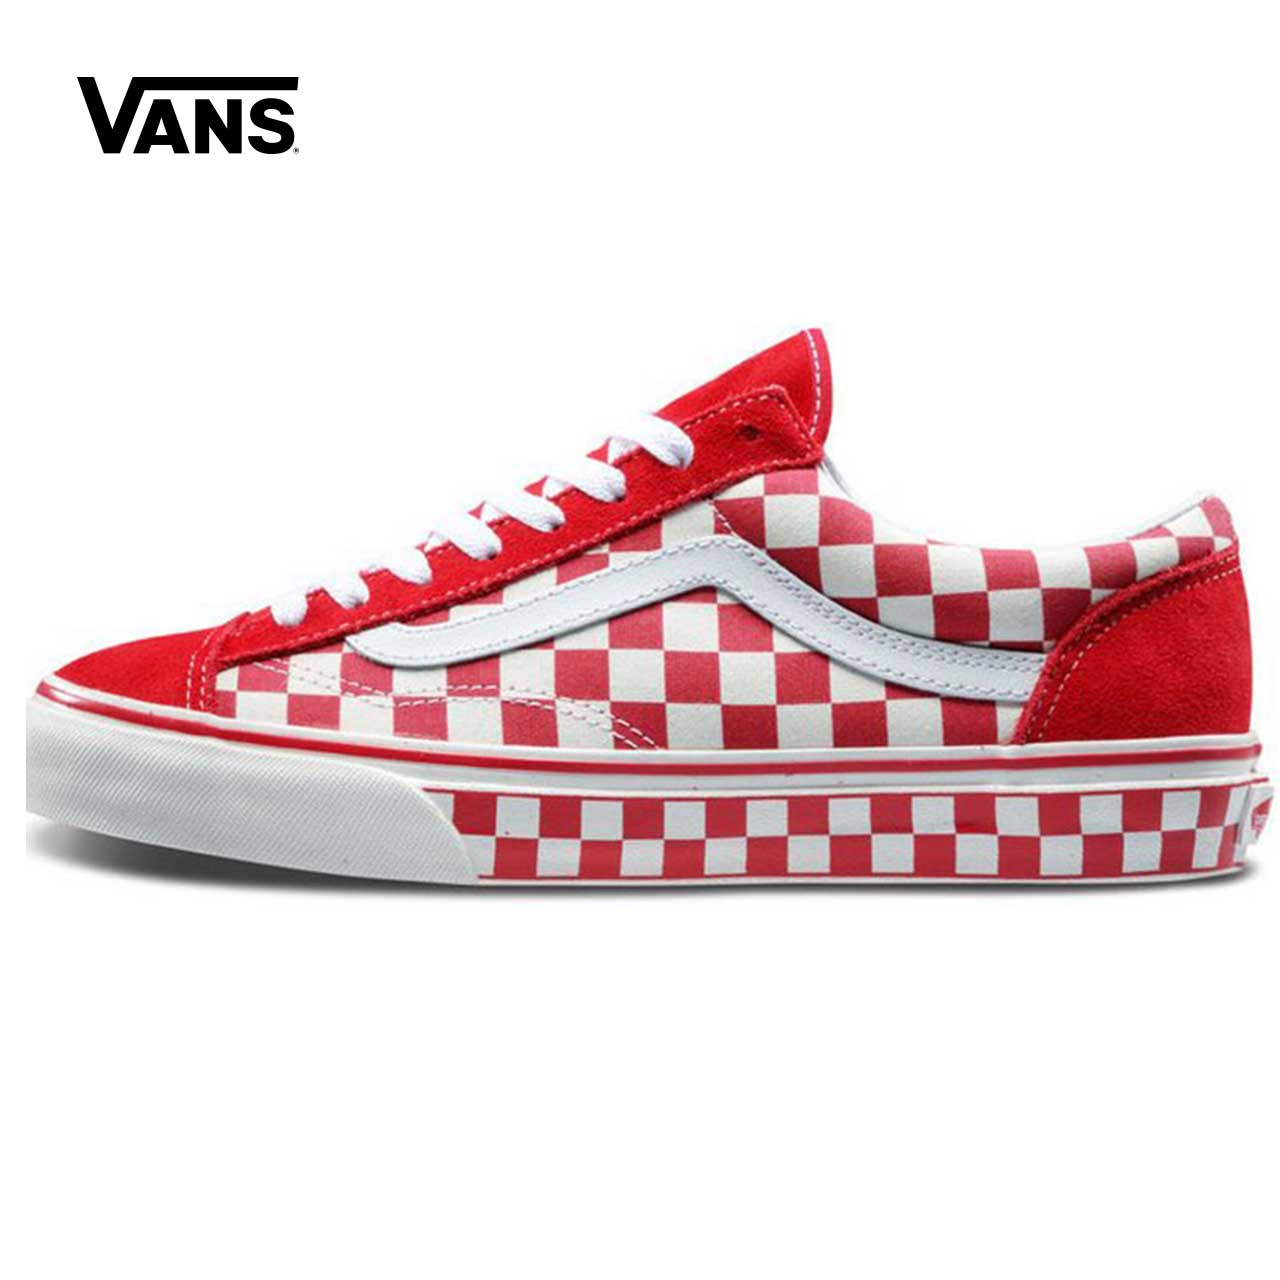 Original Vans Classic Style 36 Checkerboard Racing Red Skateboarding Shoes  Low-top Men s   Women s Sneakers Canvas VN0A3DZ3T1D e11a7bc76